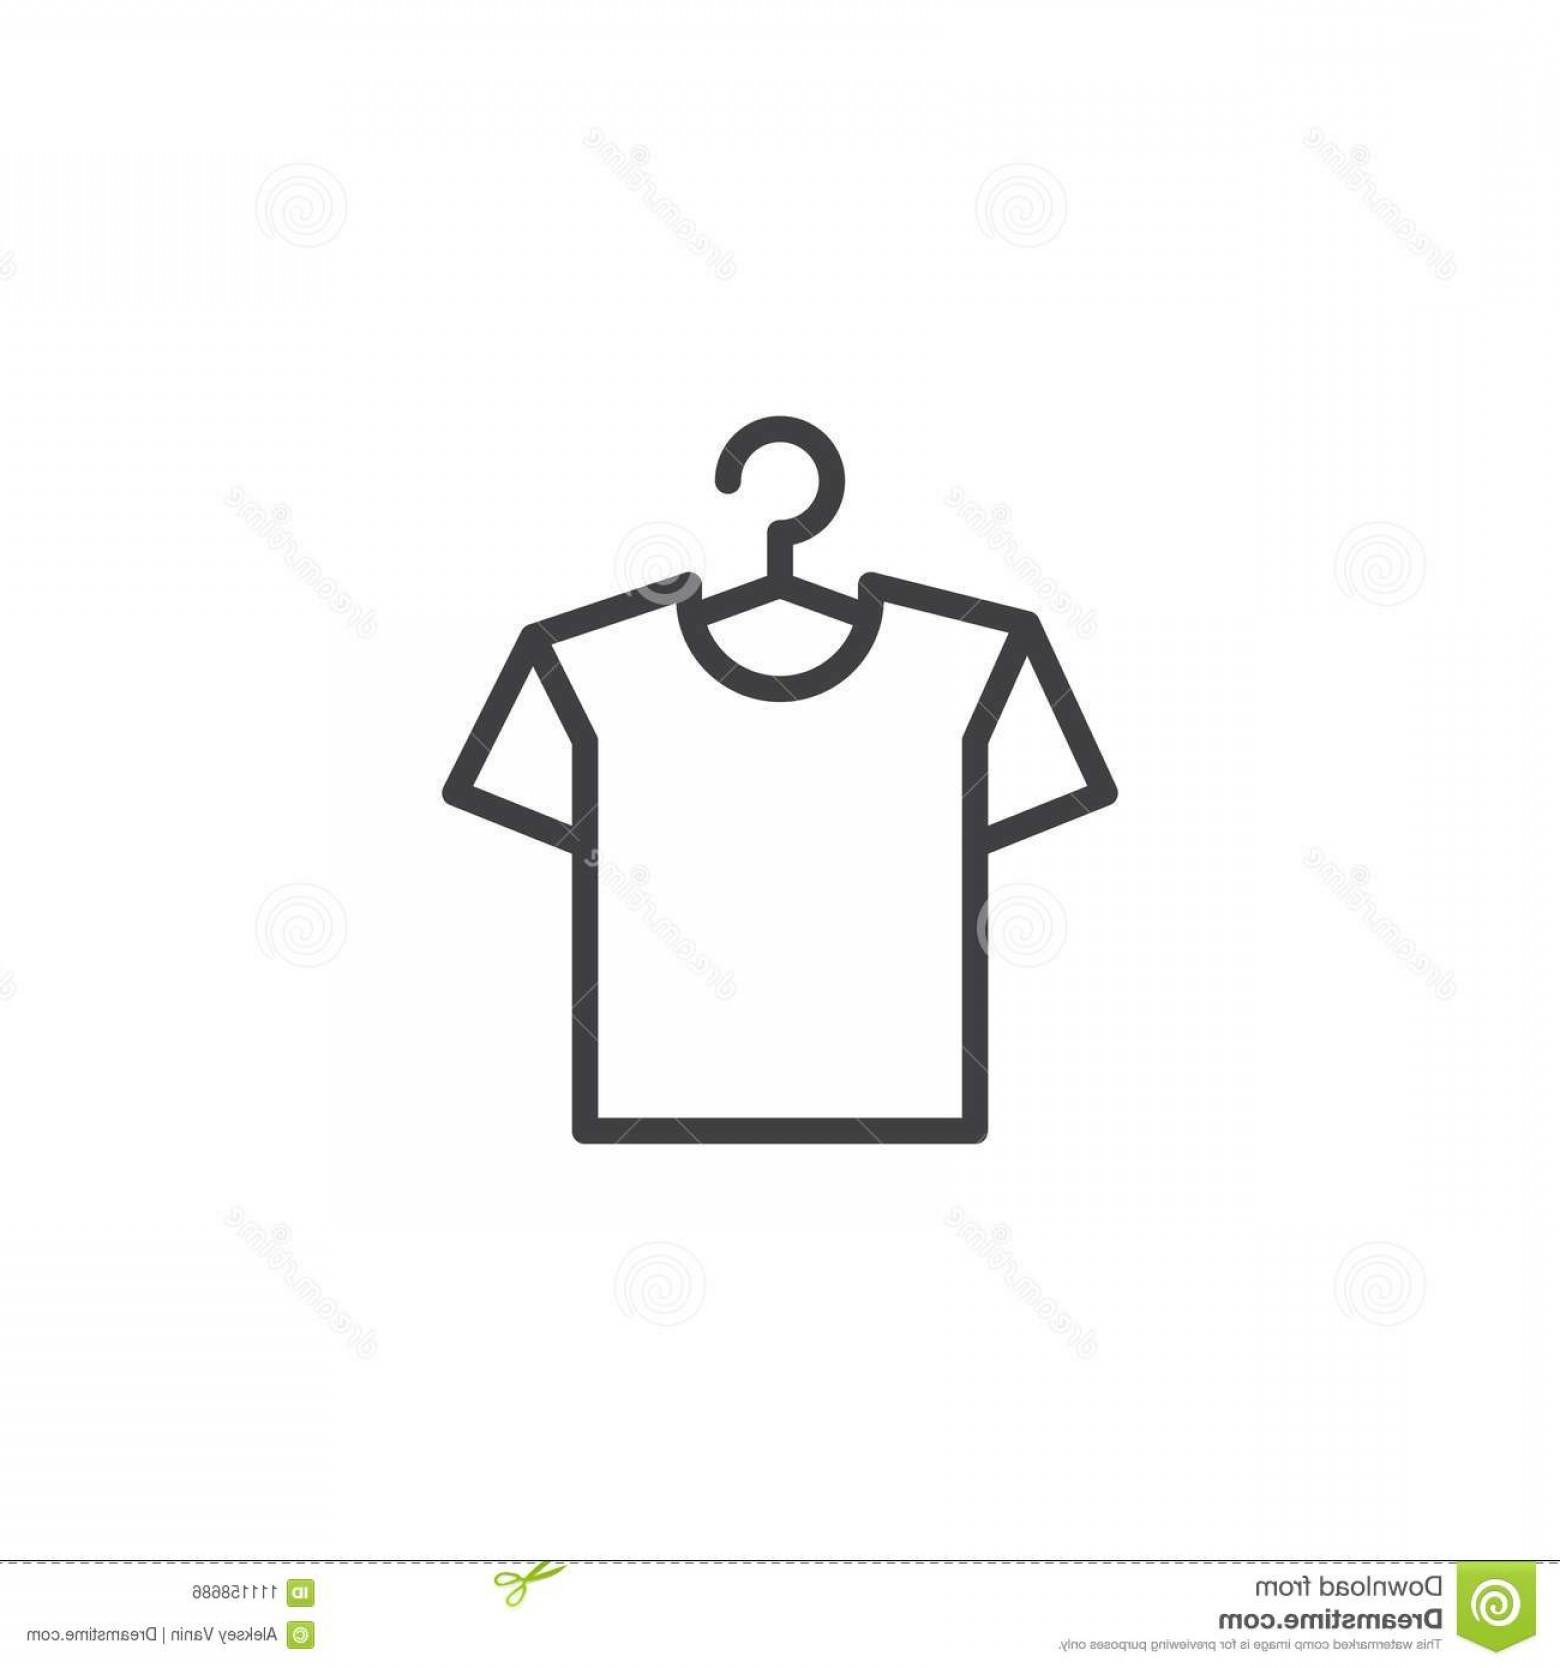 Shirt Hanger Icon Vector: Hanger Shirt Outline Icon Linear Style Sign Mobile Concept Web Design T Shirt Hanger Simple Line Vector Icon Image